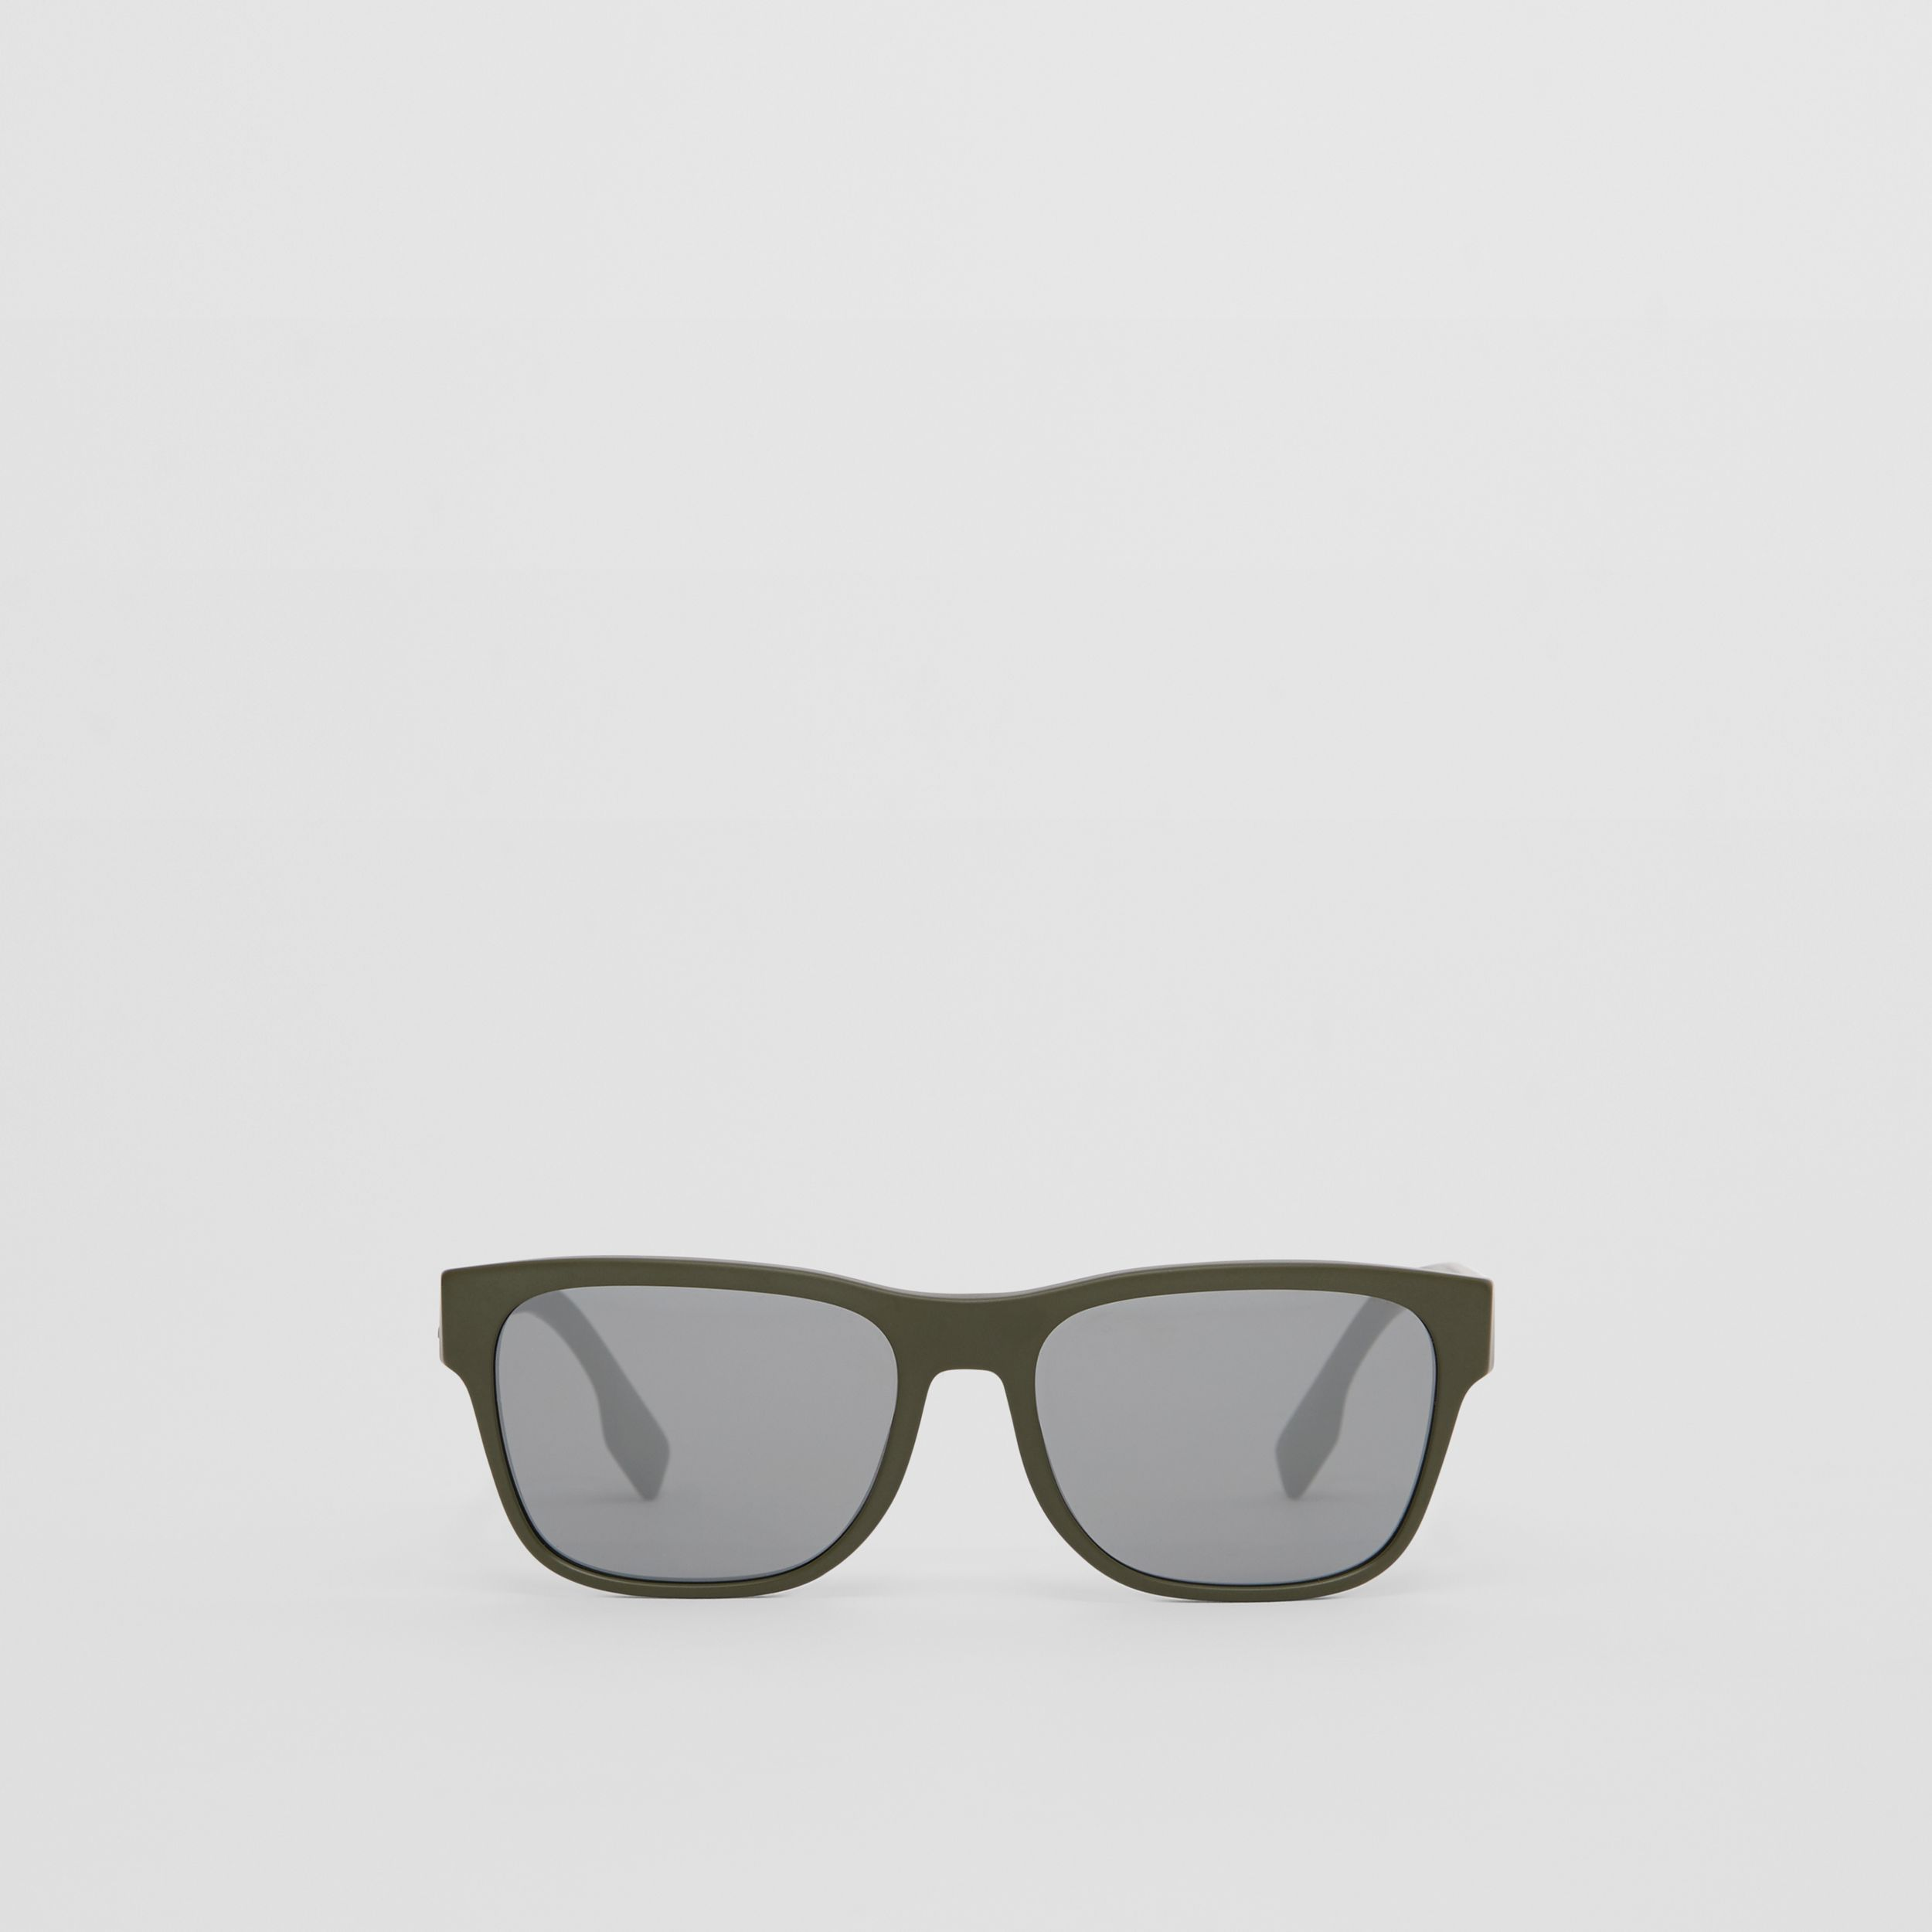 Logo Appliqué Square Frame Sunglasses in Military Green - Men | Burberry United States - 1